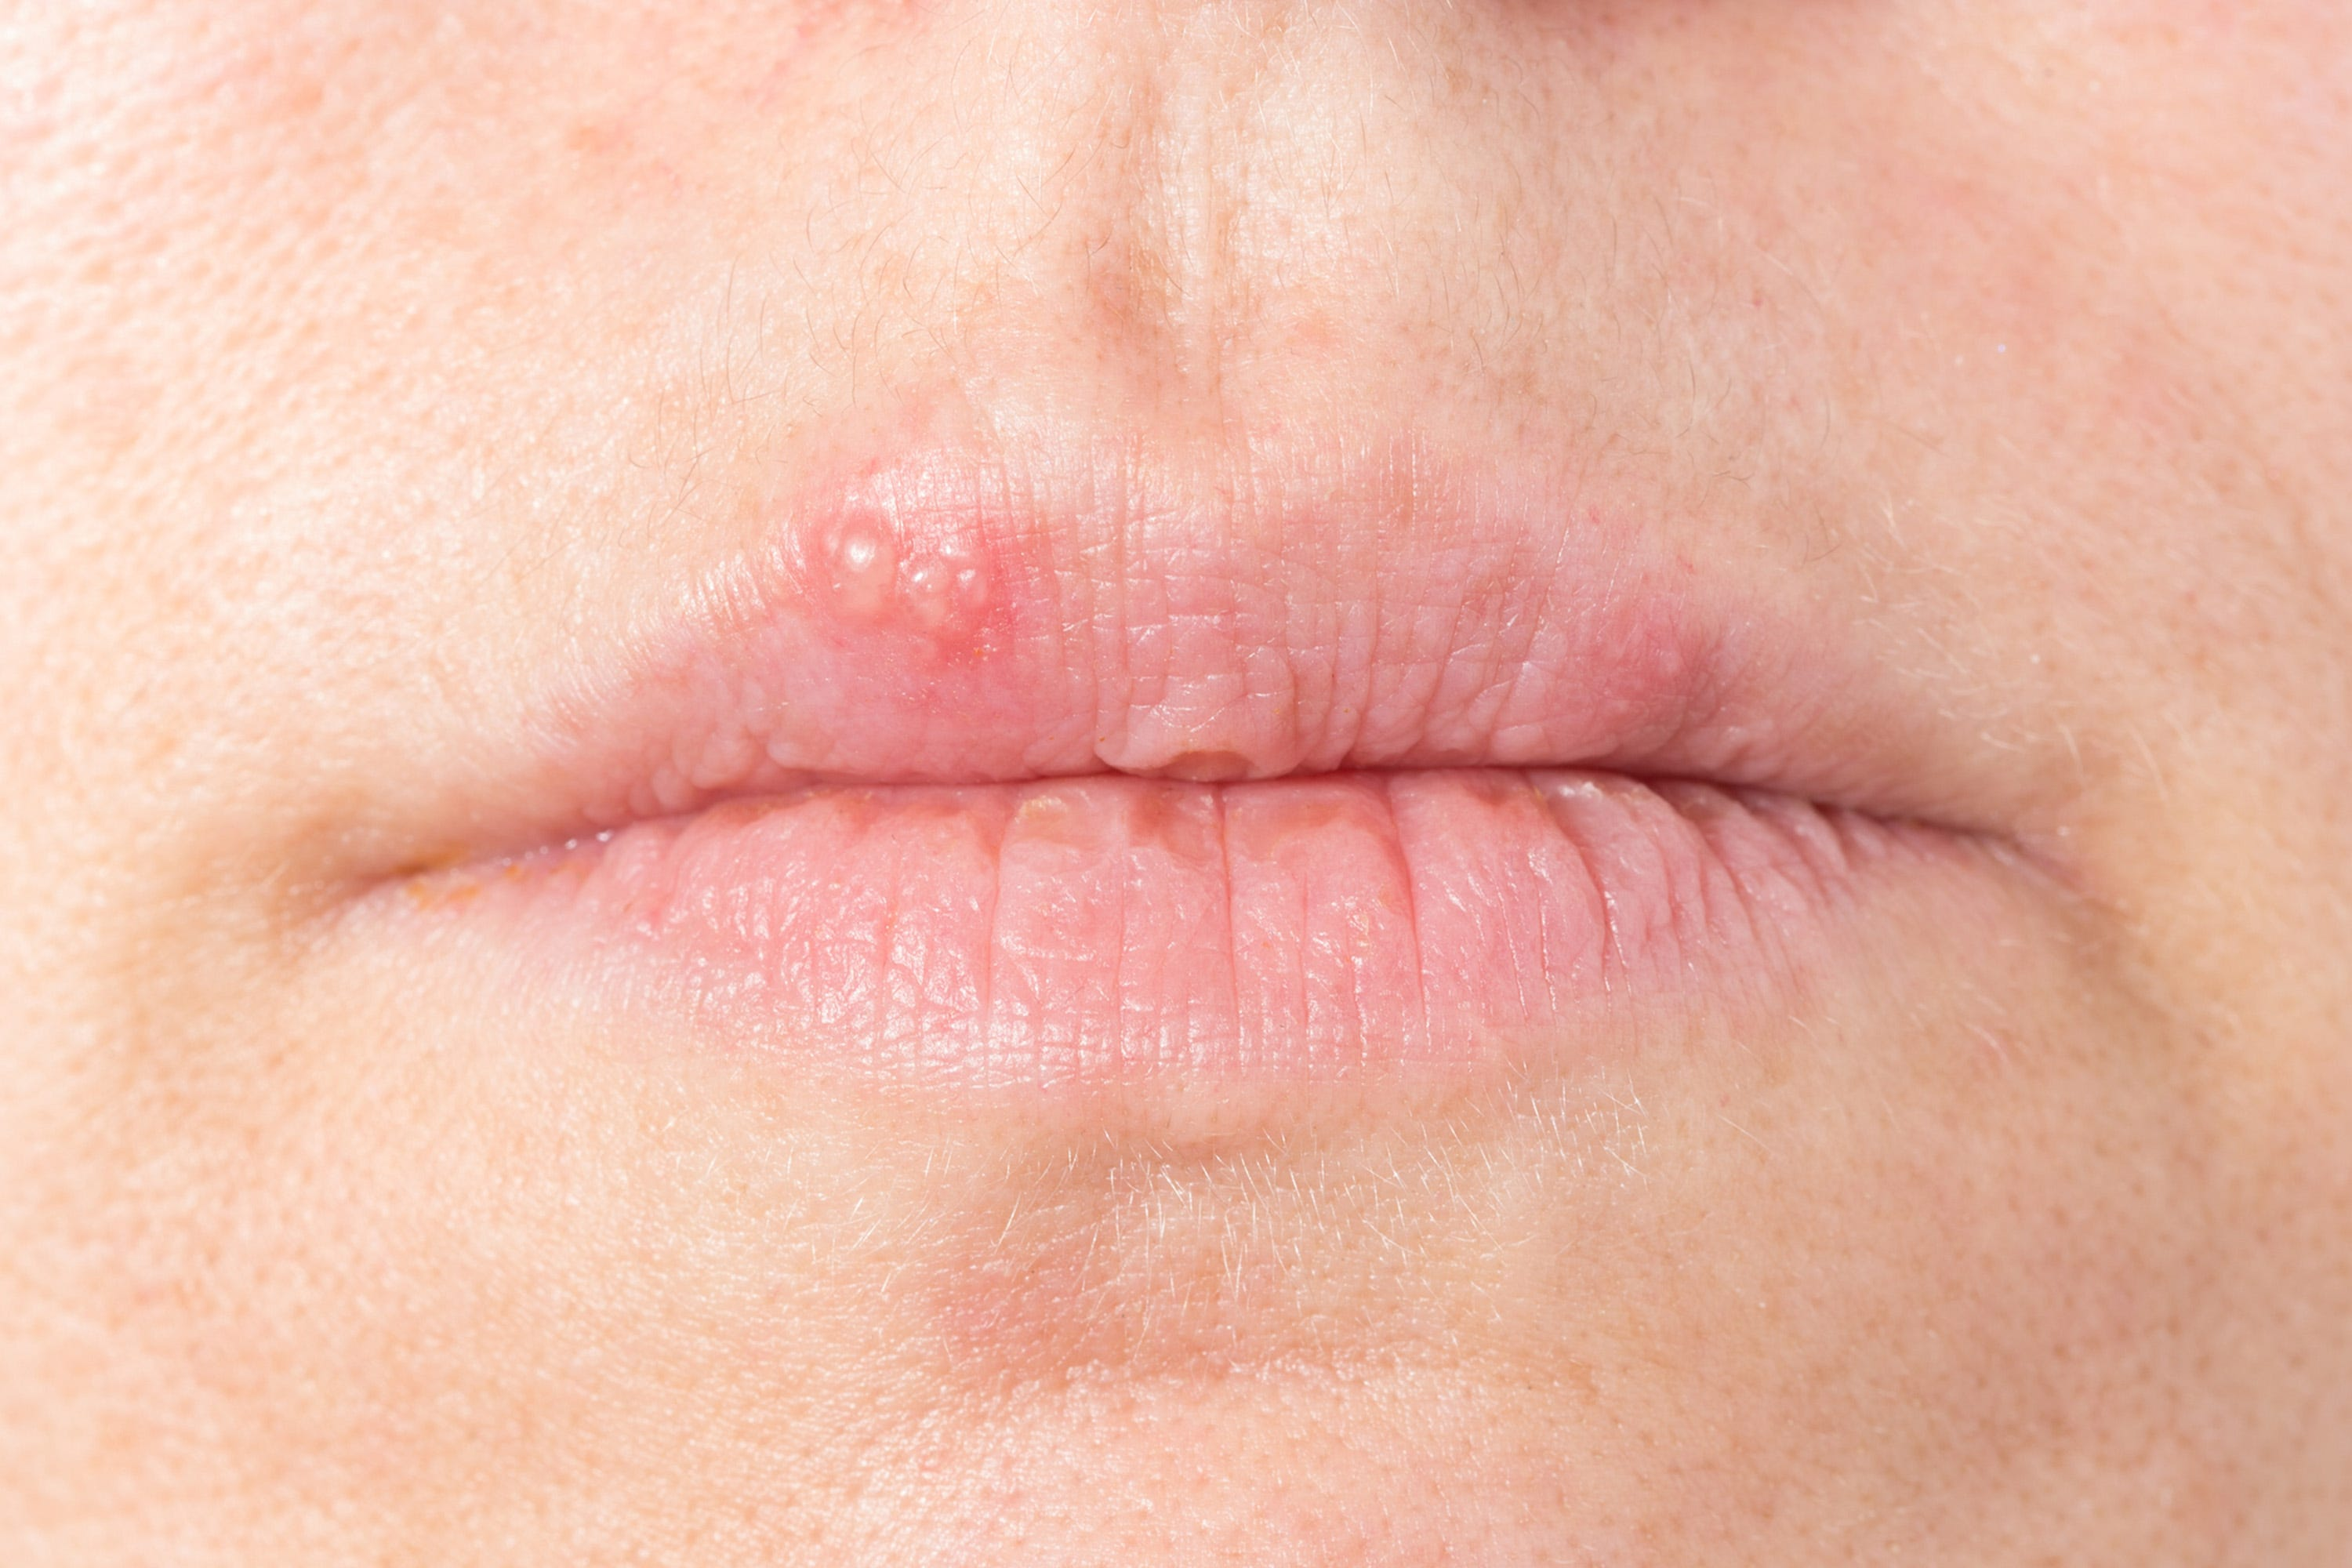 Herpes - Herpes Pictures and Cold Sores Pictures